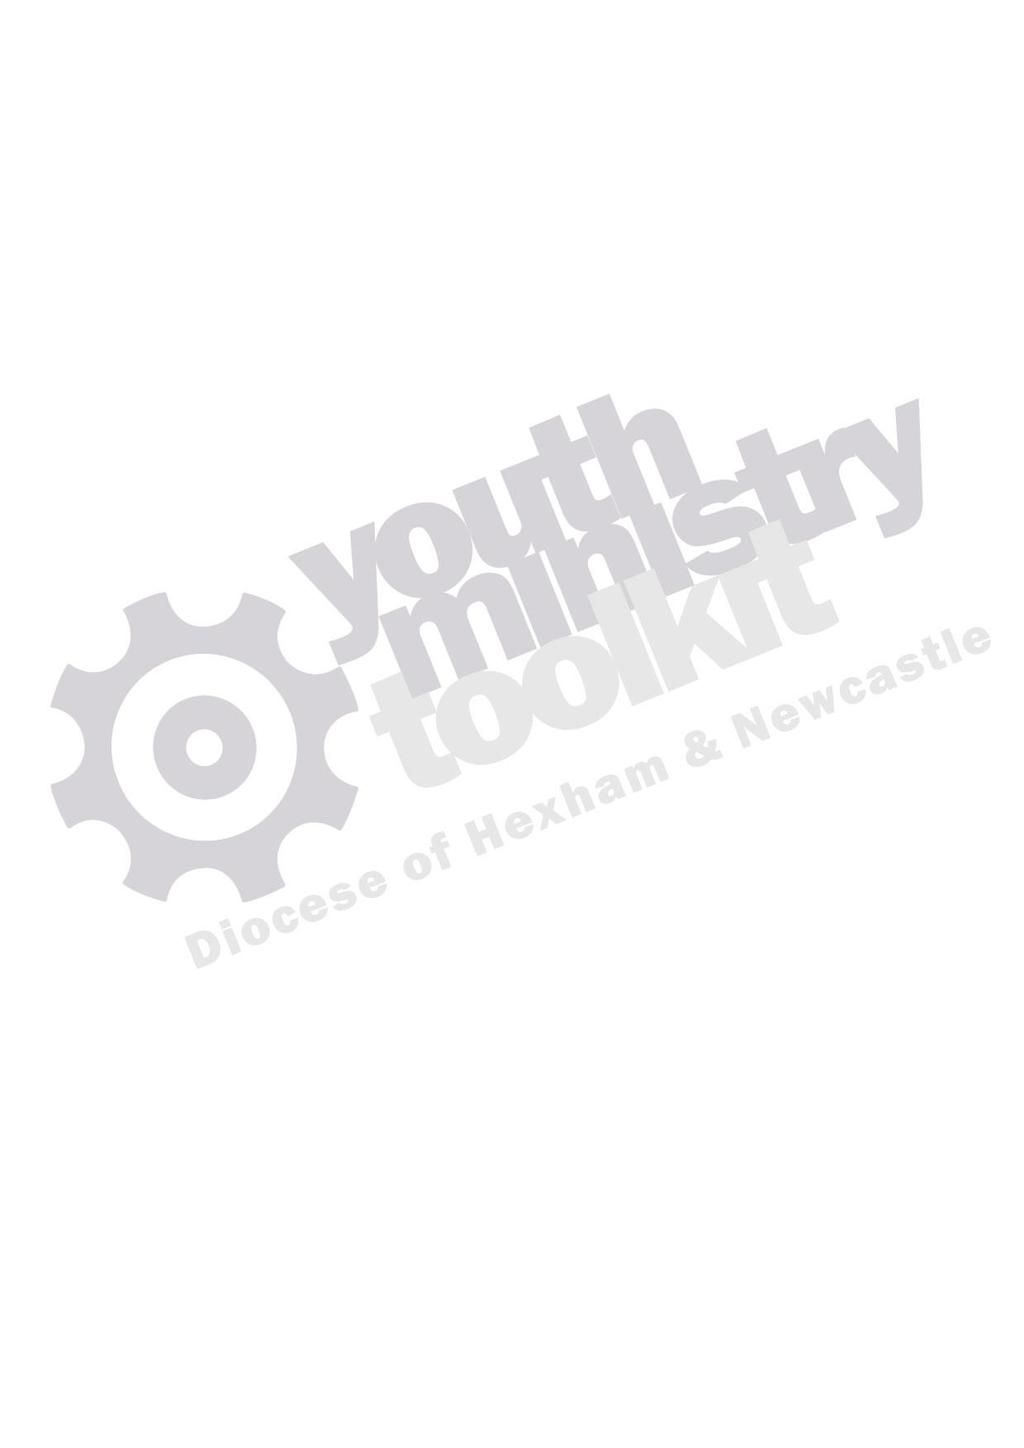 Guidelines for employing a Youth Ministry Coordinator FOREWORD As the Church of Hexham and Newcastle, we are challenged to listen to and live out the Gospel and to build the Kingdom of God in our